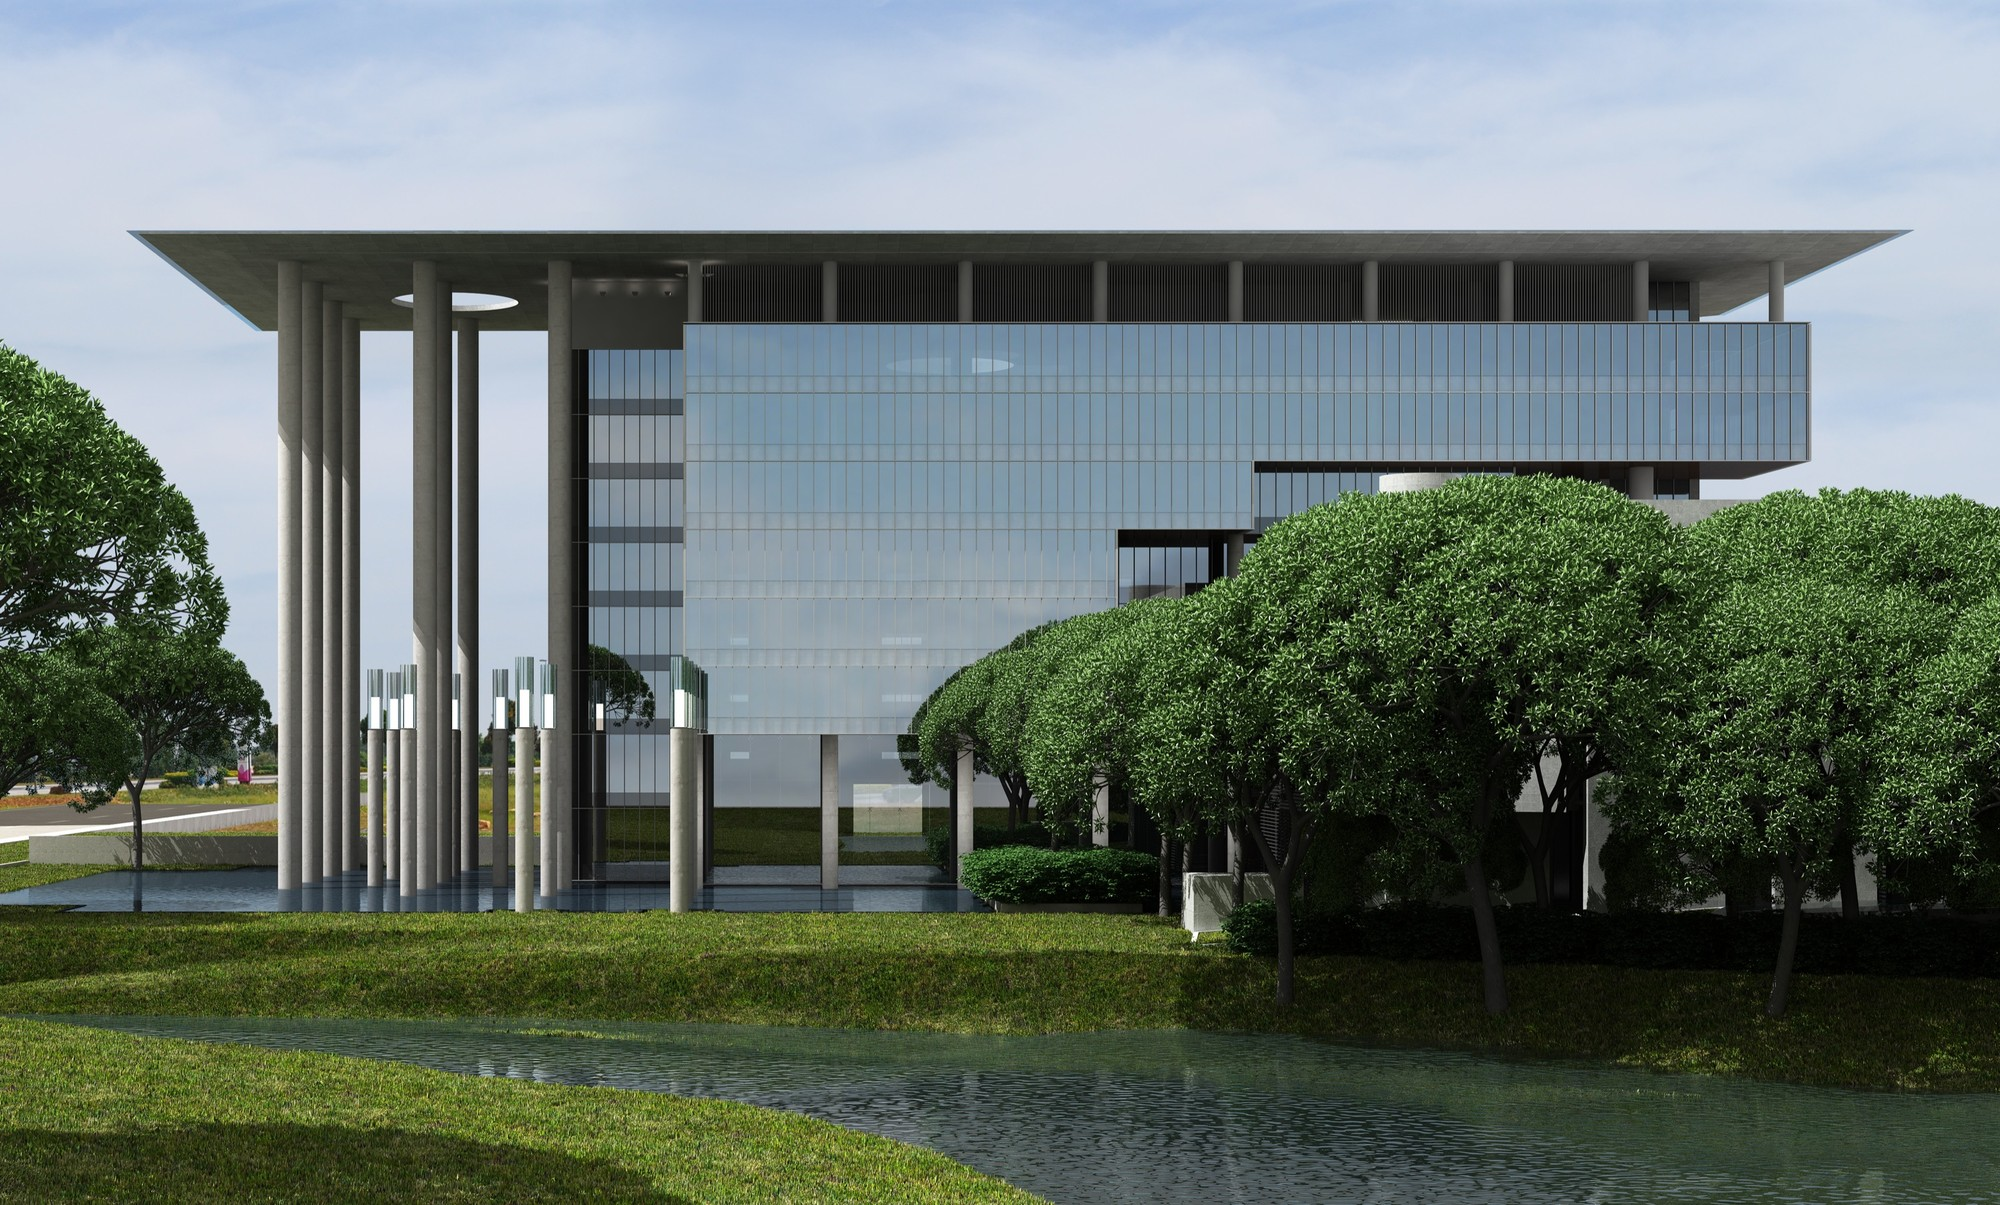 SP Setia Headquarter / Shatotto, Courtesy of Shatotto